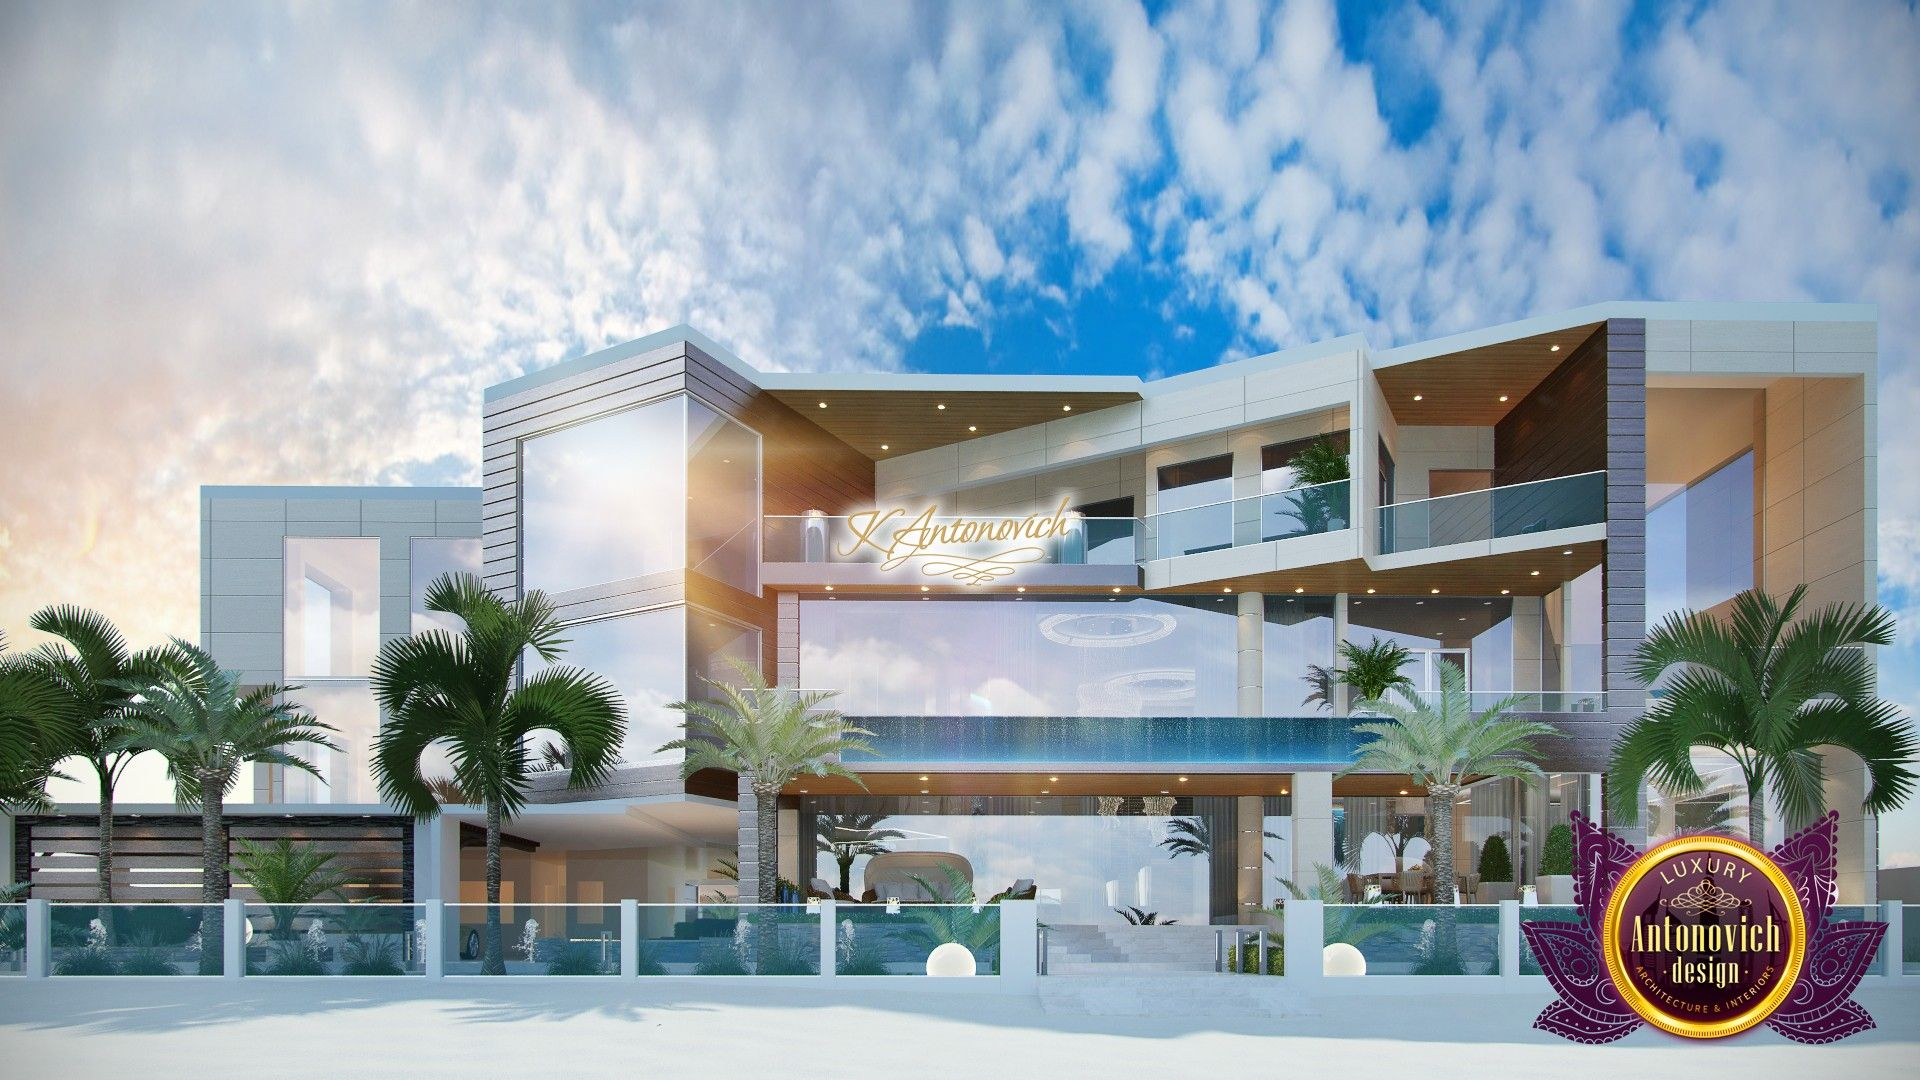 Dubai interior design gallery by luxury antonovich design palm jumeirah modern exterior